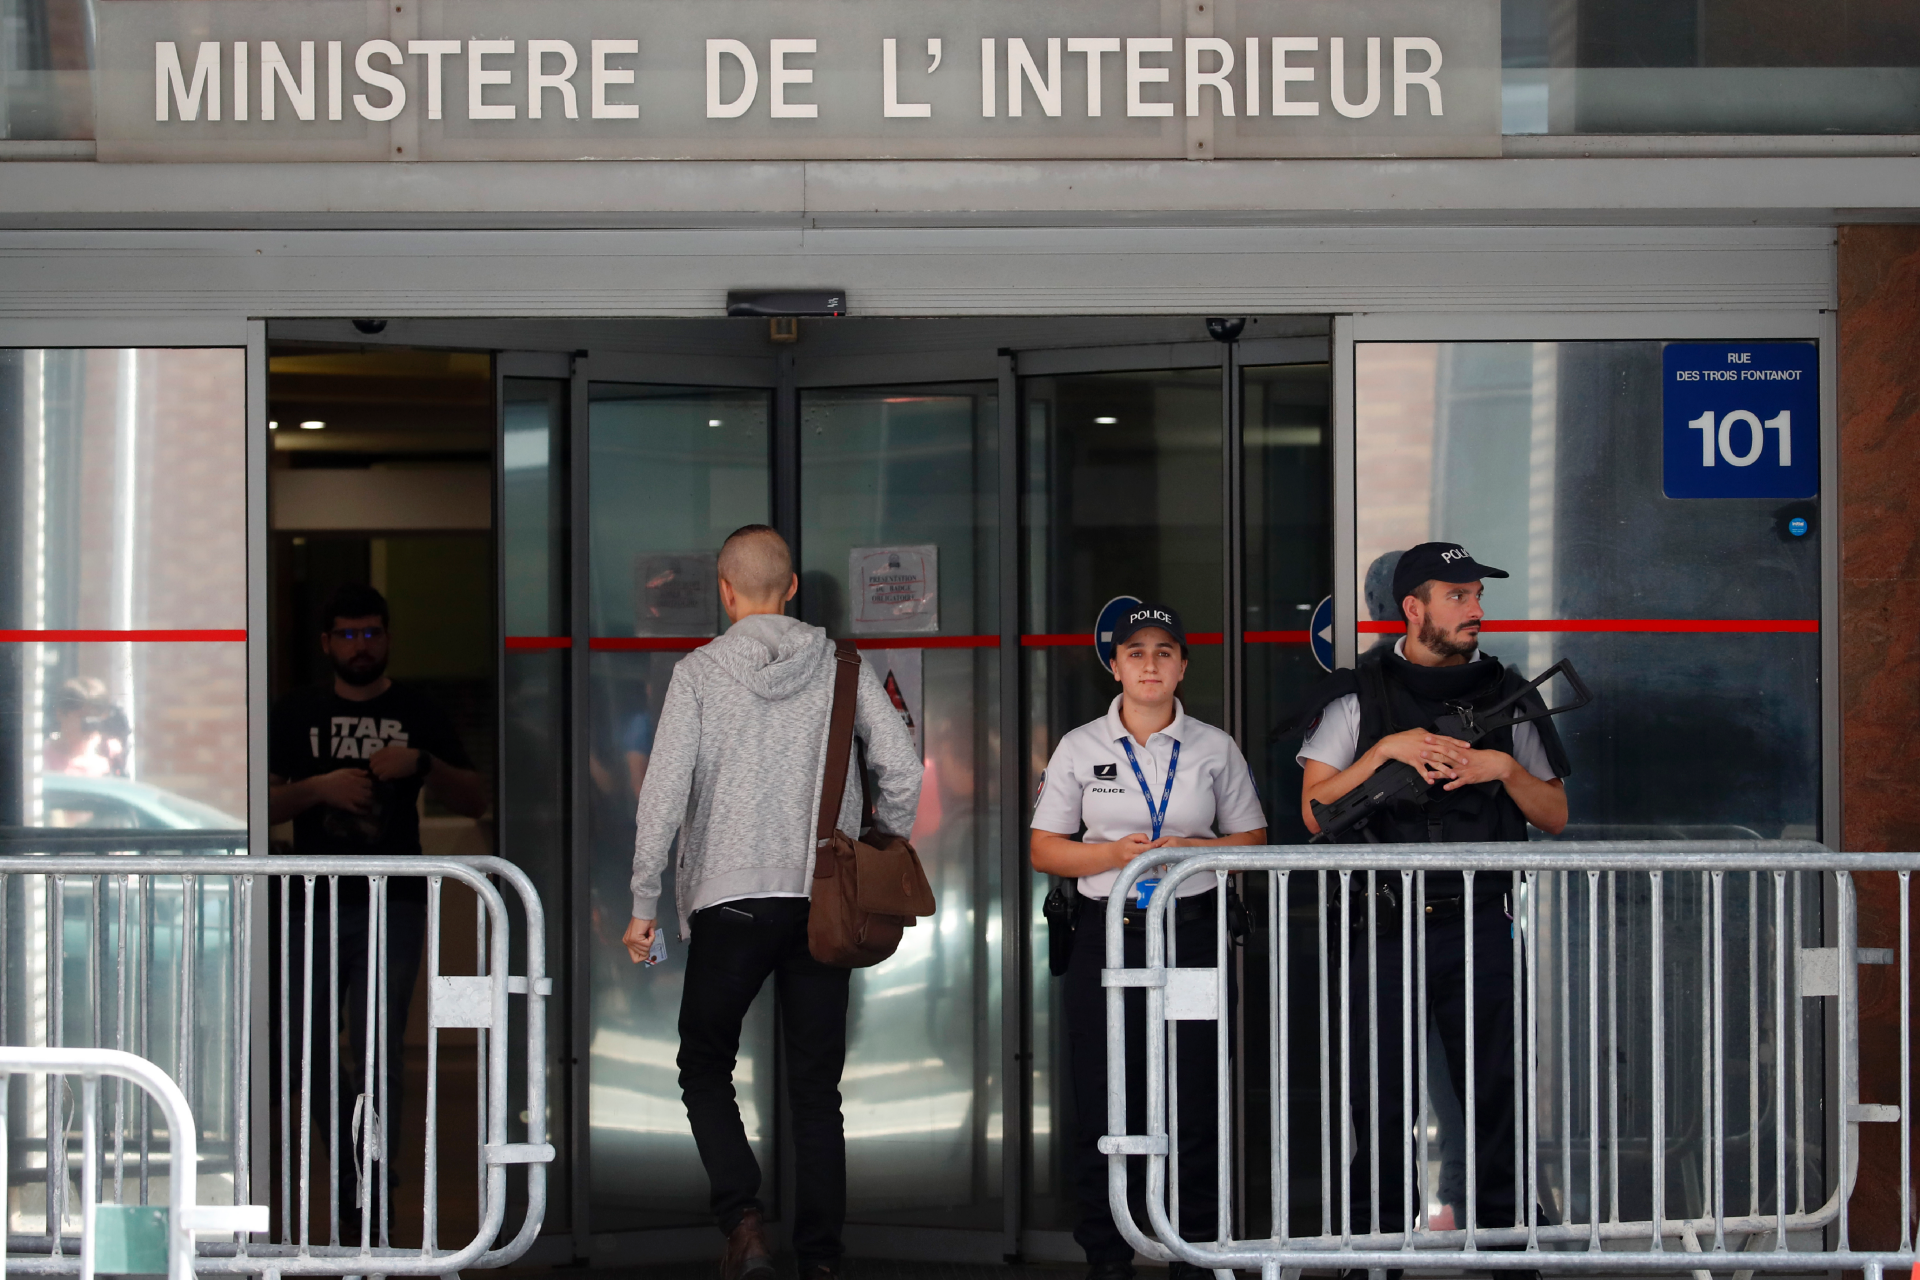 Westlake Legal Group ContentBroker_contentid-b97914dcd15c454e9d719f3500474533-1 The Latest: FIFA says arrest of Platini is 'concerning' Paris fox-news/world/world-regions/middle-east fox-news/world/world-regions/europe fox-news/world fnc/world fnc Associated Press article 58565bf0-d684-5907-8fd5-7be95efe167f